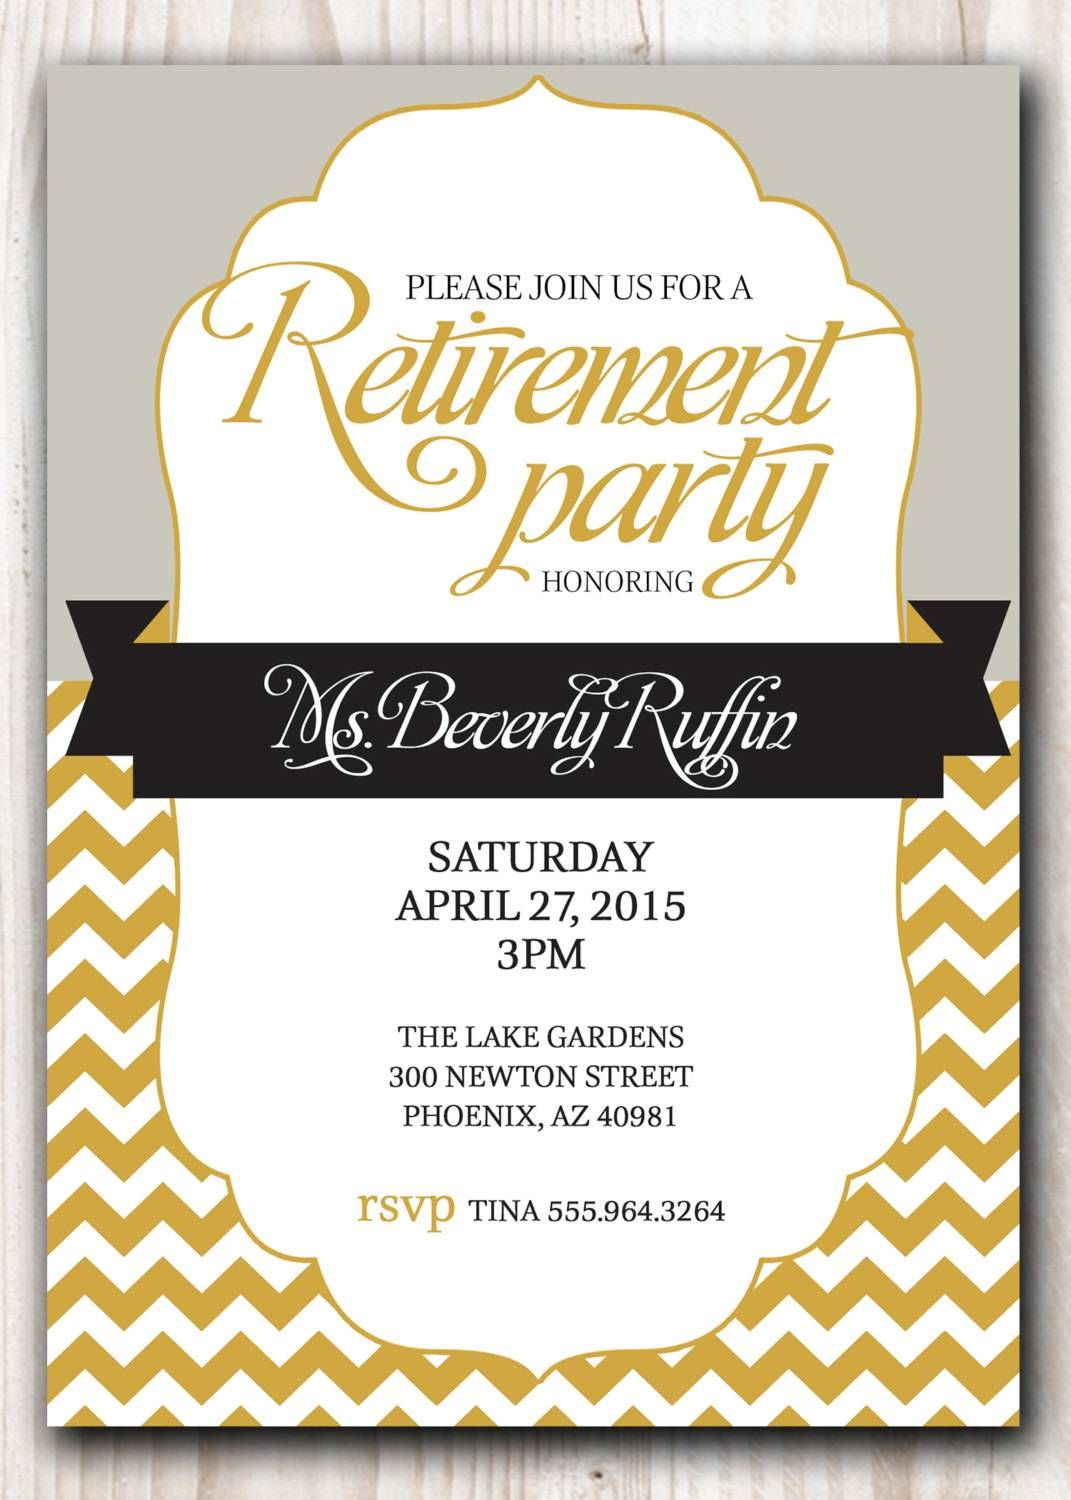 Retirement Party Invitation Template Microsoft | Retirment party ...